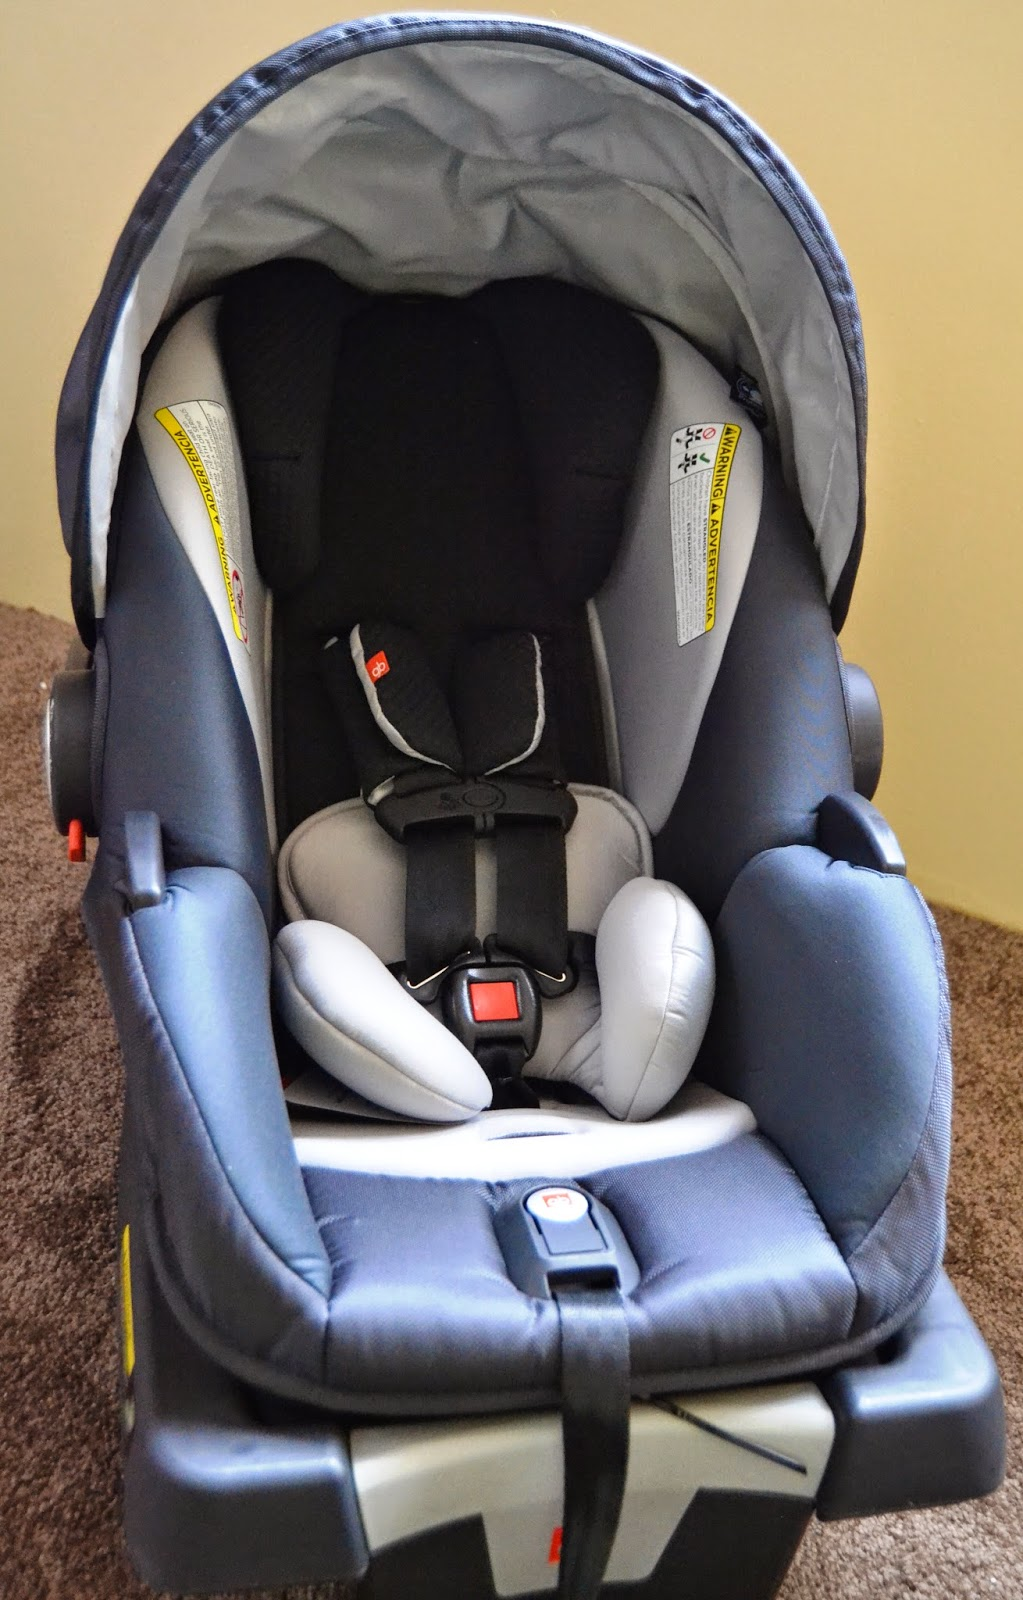 gb asana35 ap car seat review the nutritionist reviews. Black Bedroom Furniture Sets. Home Design Ideas